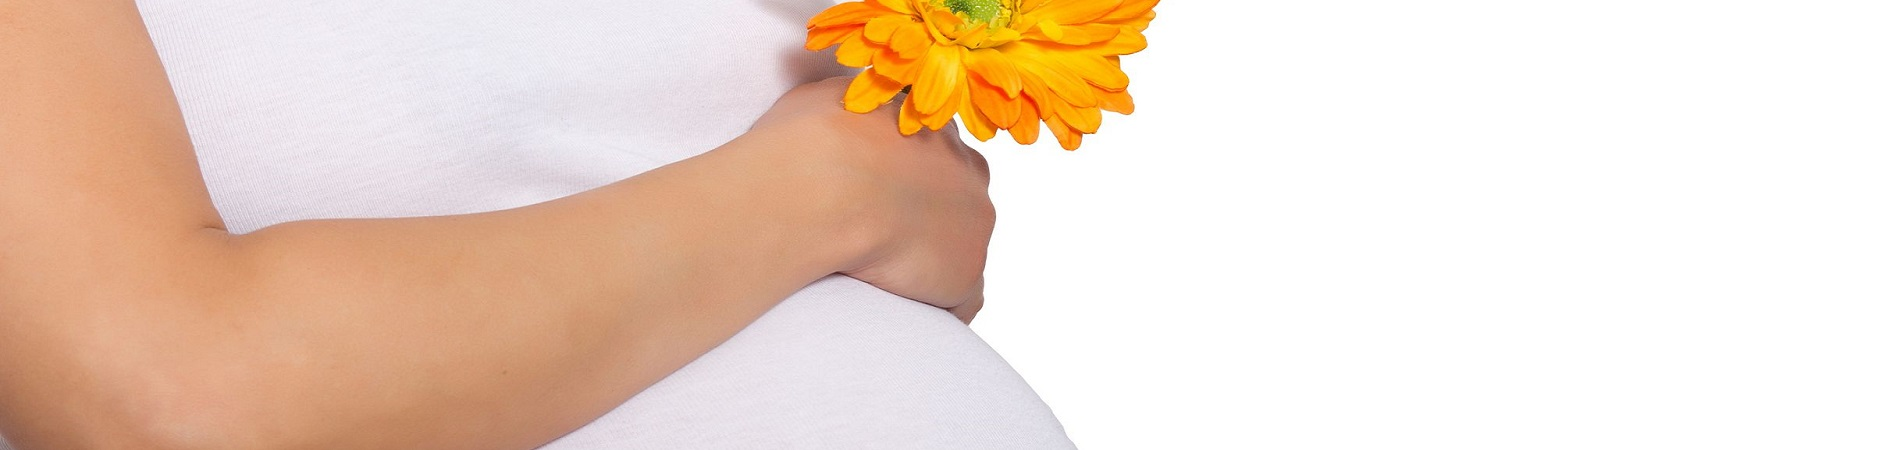 Pregancy problems may be soothed by Acupuncture from Worcester Acupuncture